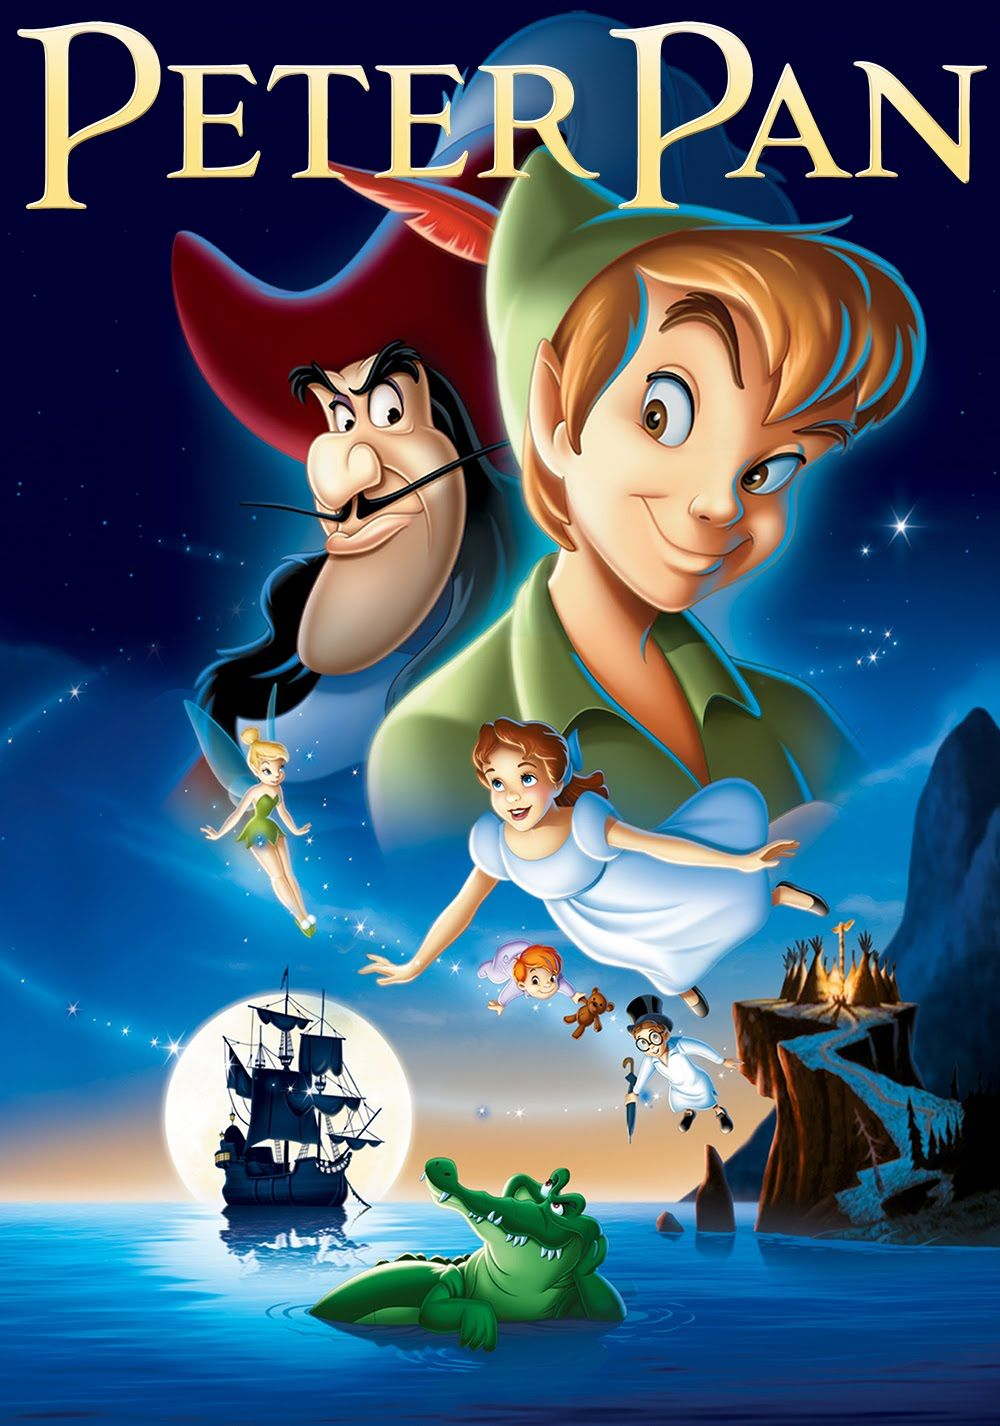 PETER PAN STORY  ENGLISH  AUDIO BOOK FOR CHILDREN   Story